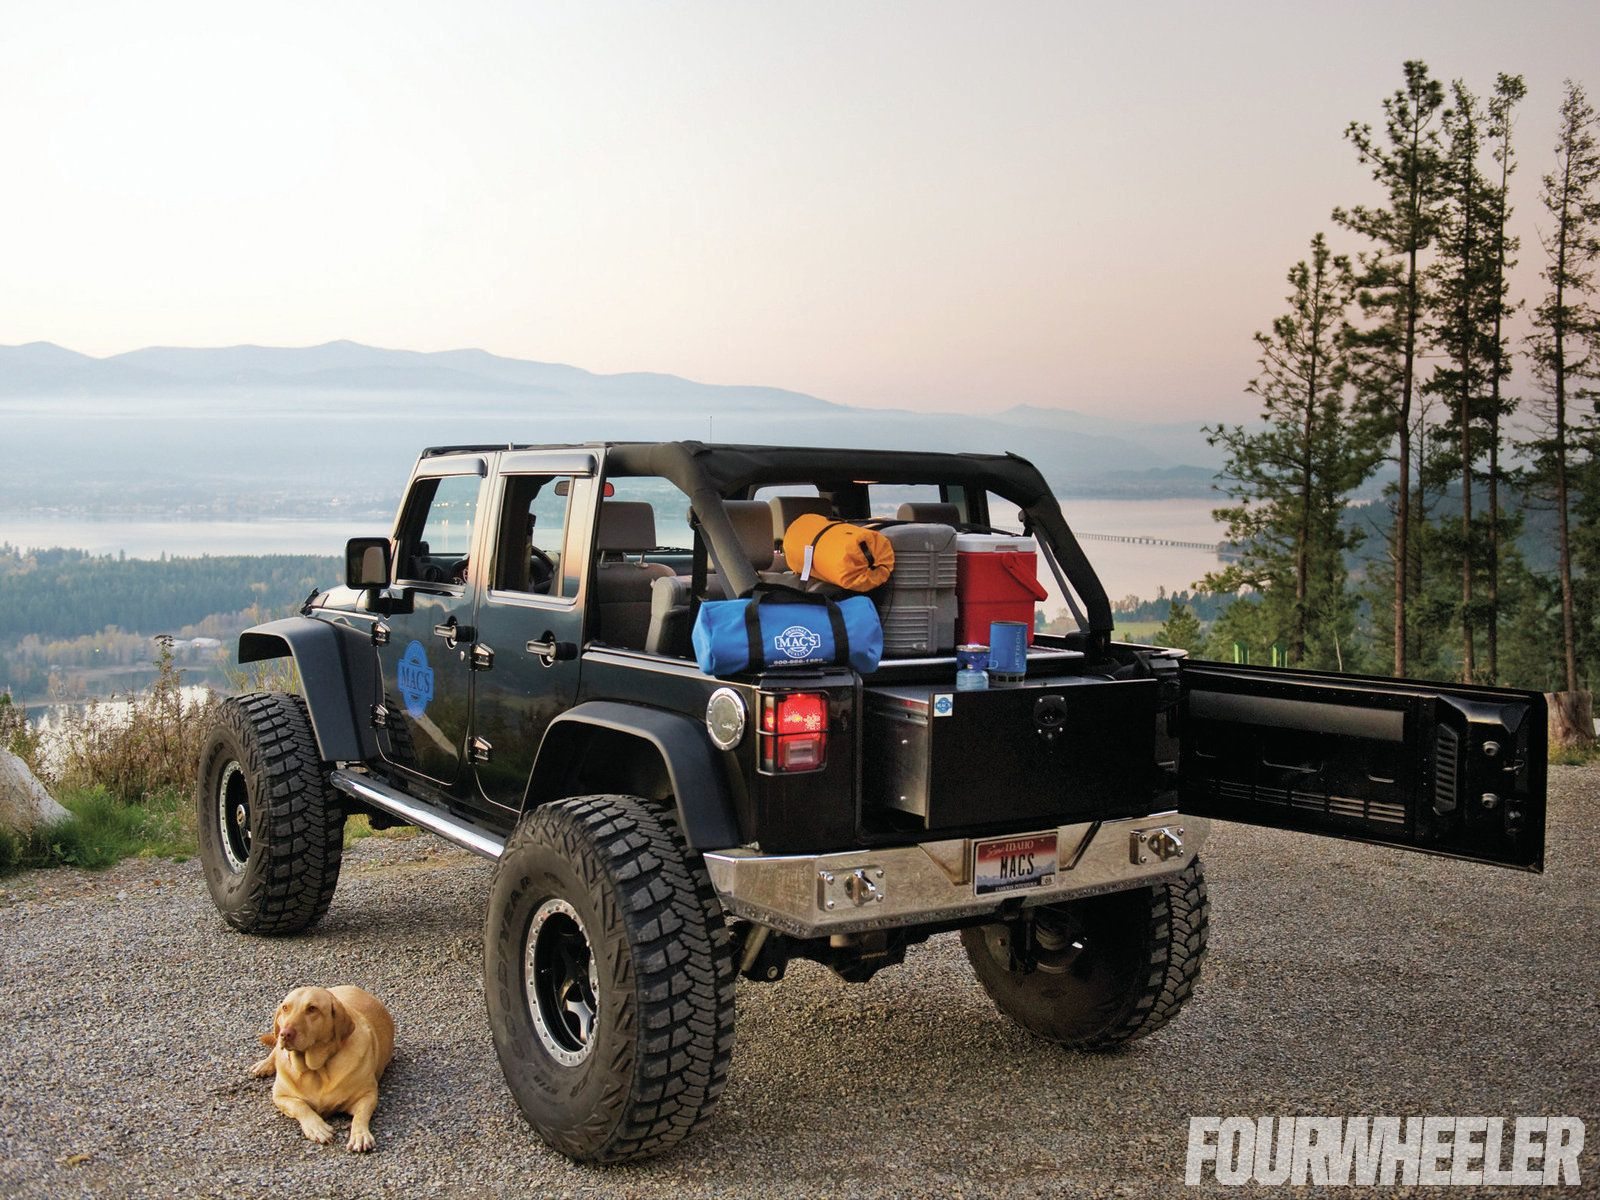 33896d6a0080a36254069b2334b243f1 Take A Look About Jeep Dog Accessories with Captivating Gallery Cars Review